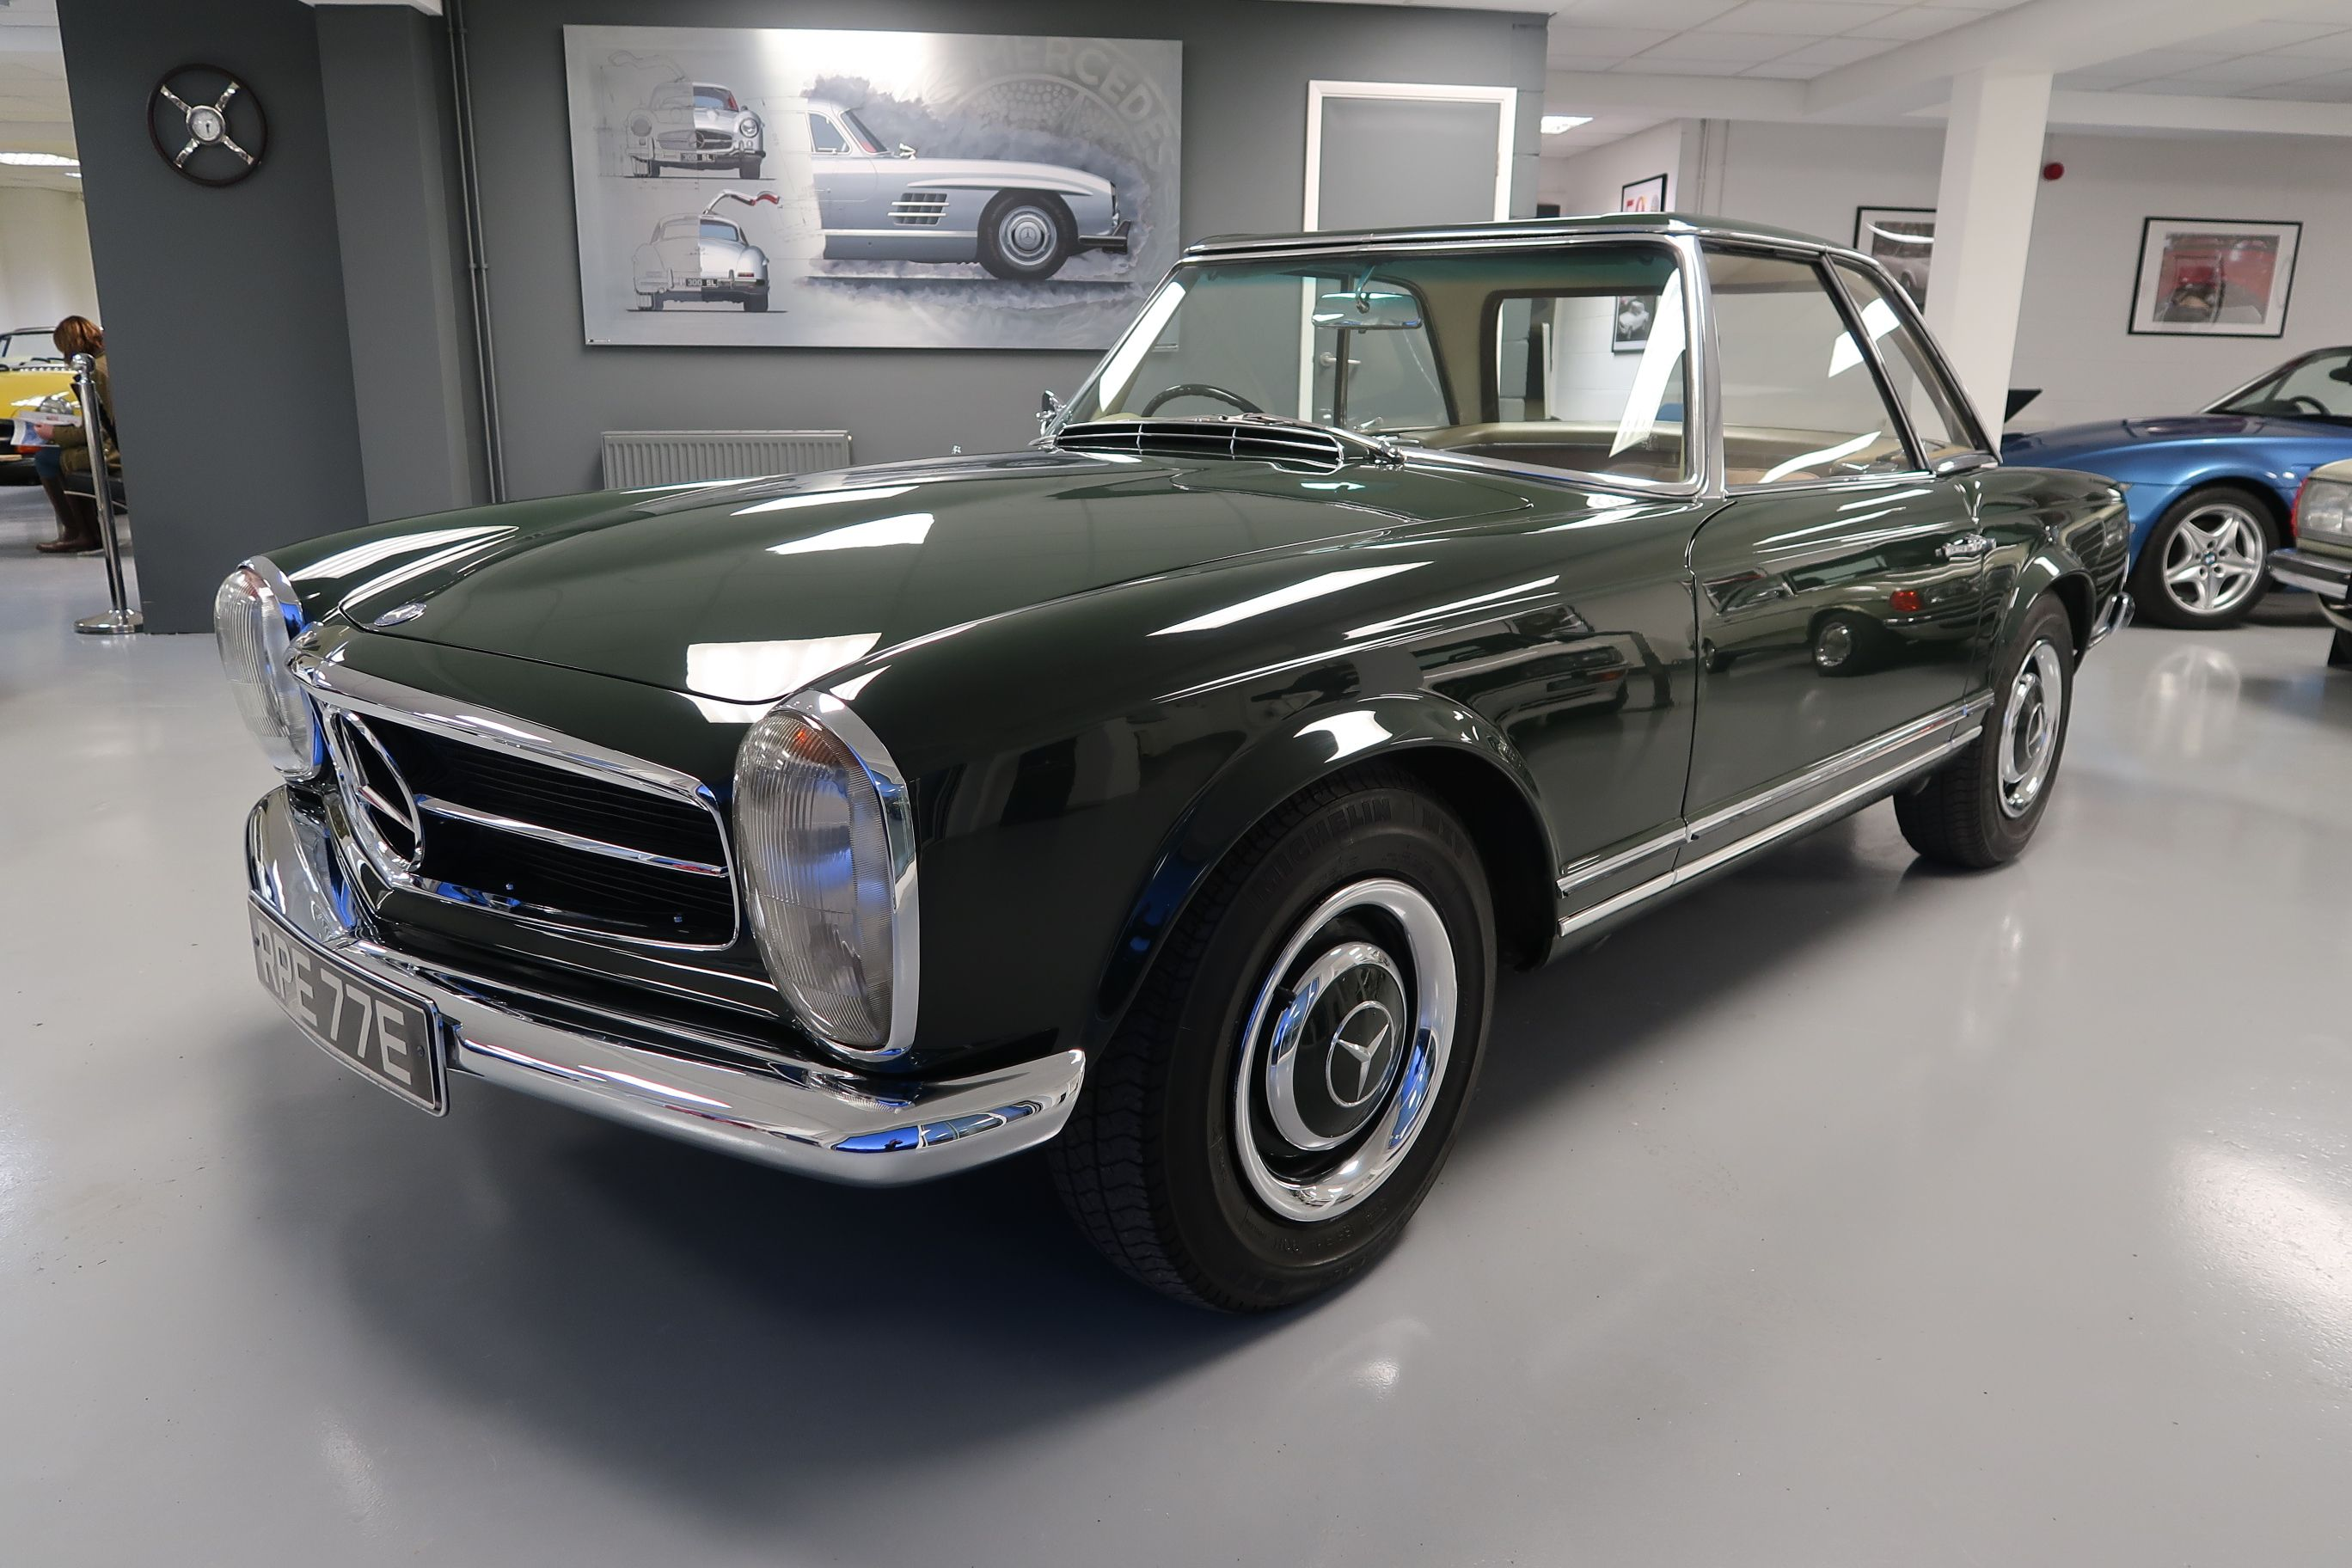 1967 Mercedes SL 250 Pagoda RHD full service history for sale at Woldside Classic and Sports Car in Louth, Lincolnshire.